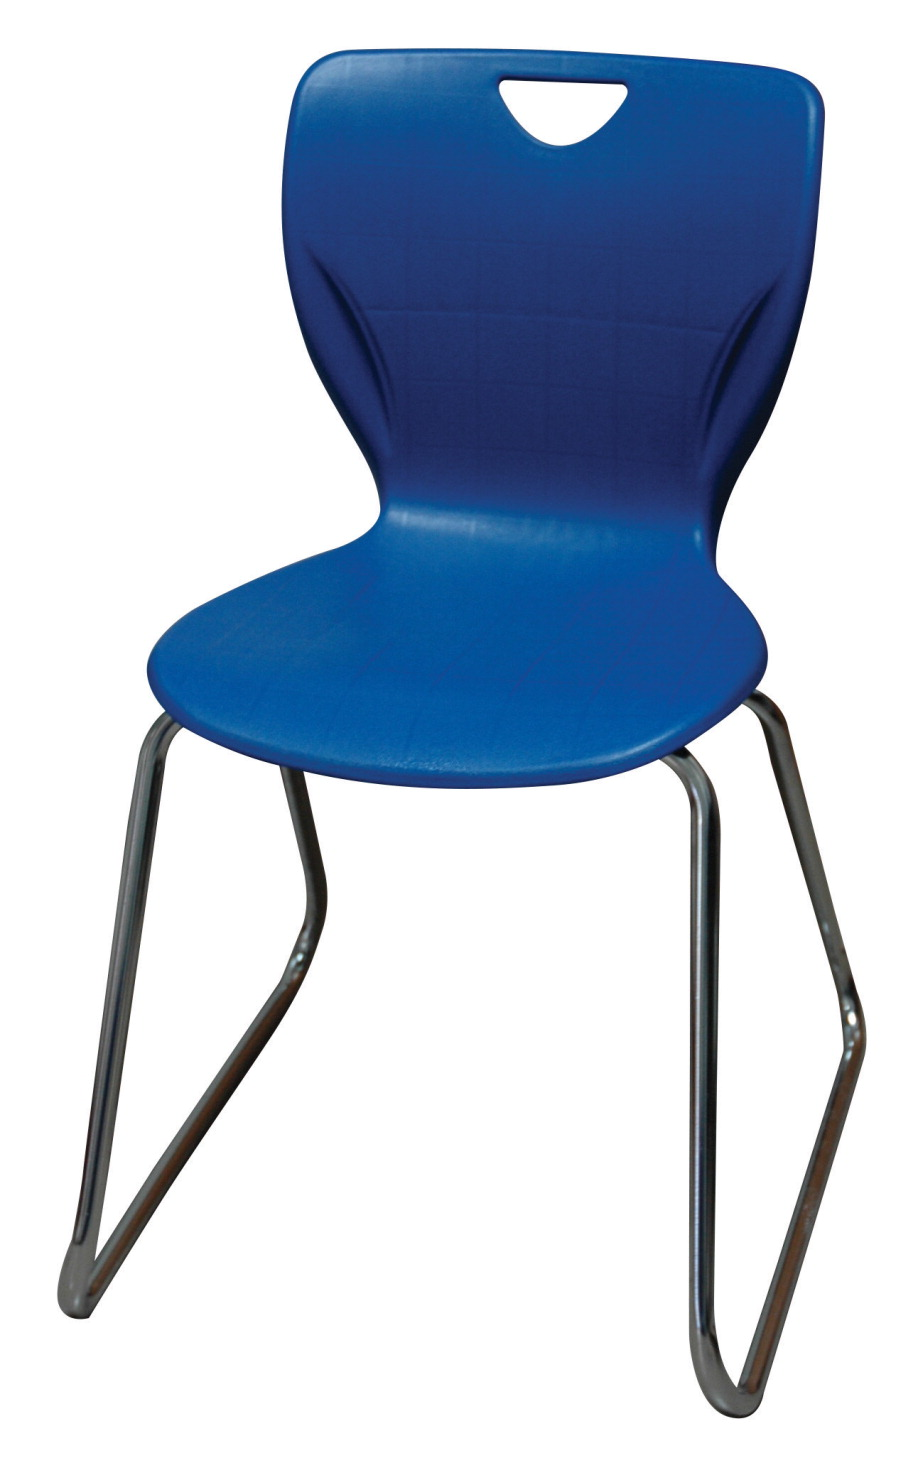 classroom select contemporary sled base chair with felt glides 14 in